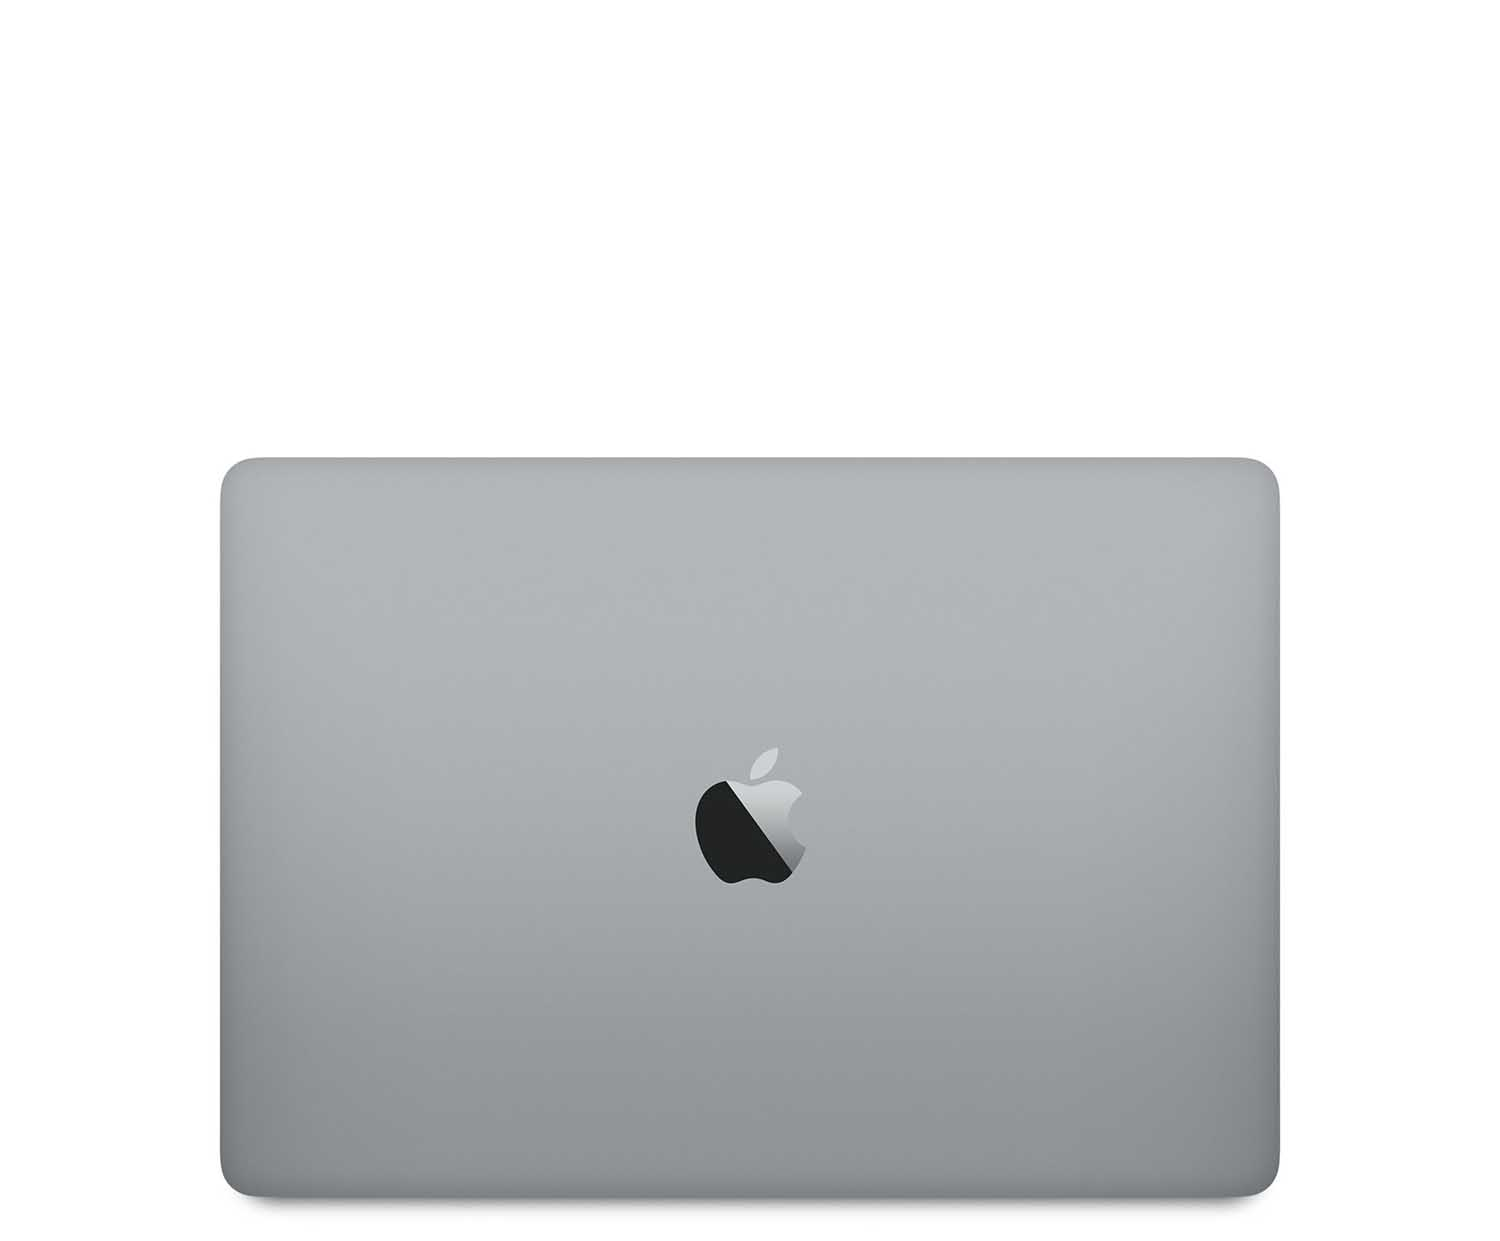 macbook pro 13 ohne touch bar 2 3 ghz core i5 128 gb. Black Bedroom Furniture Sets. Home Design Ideas